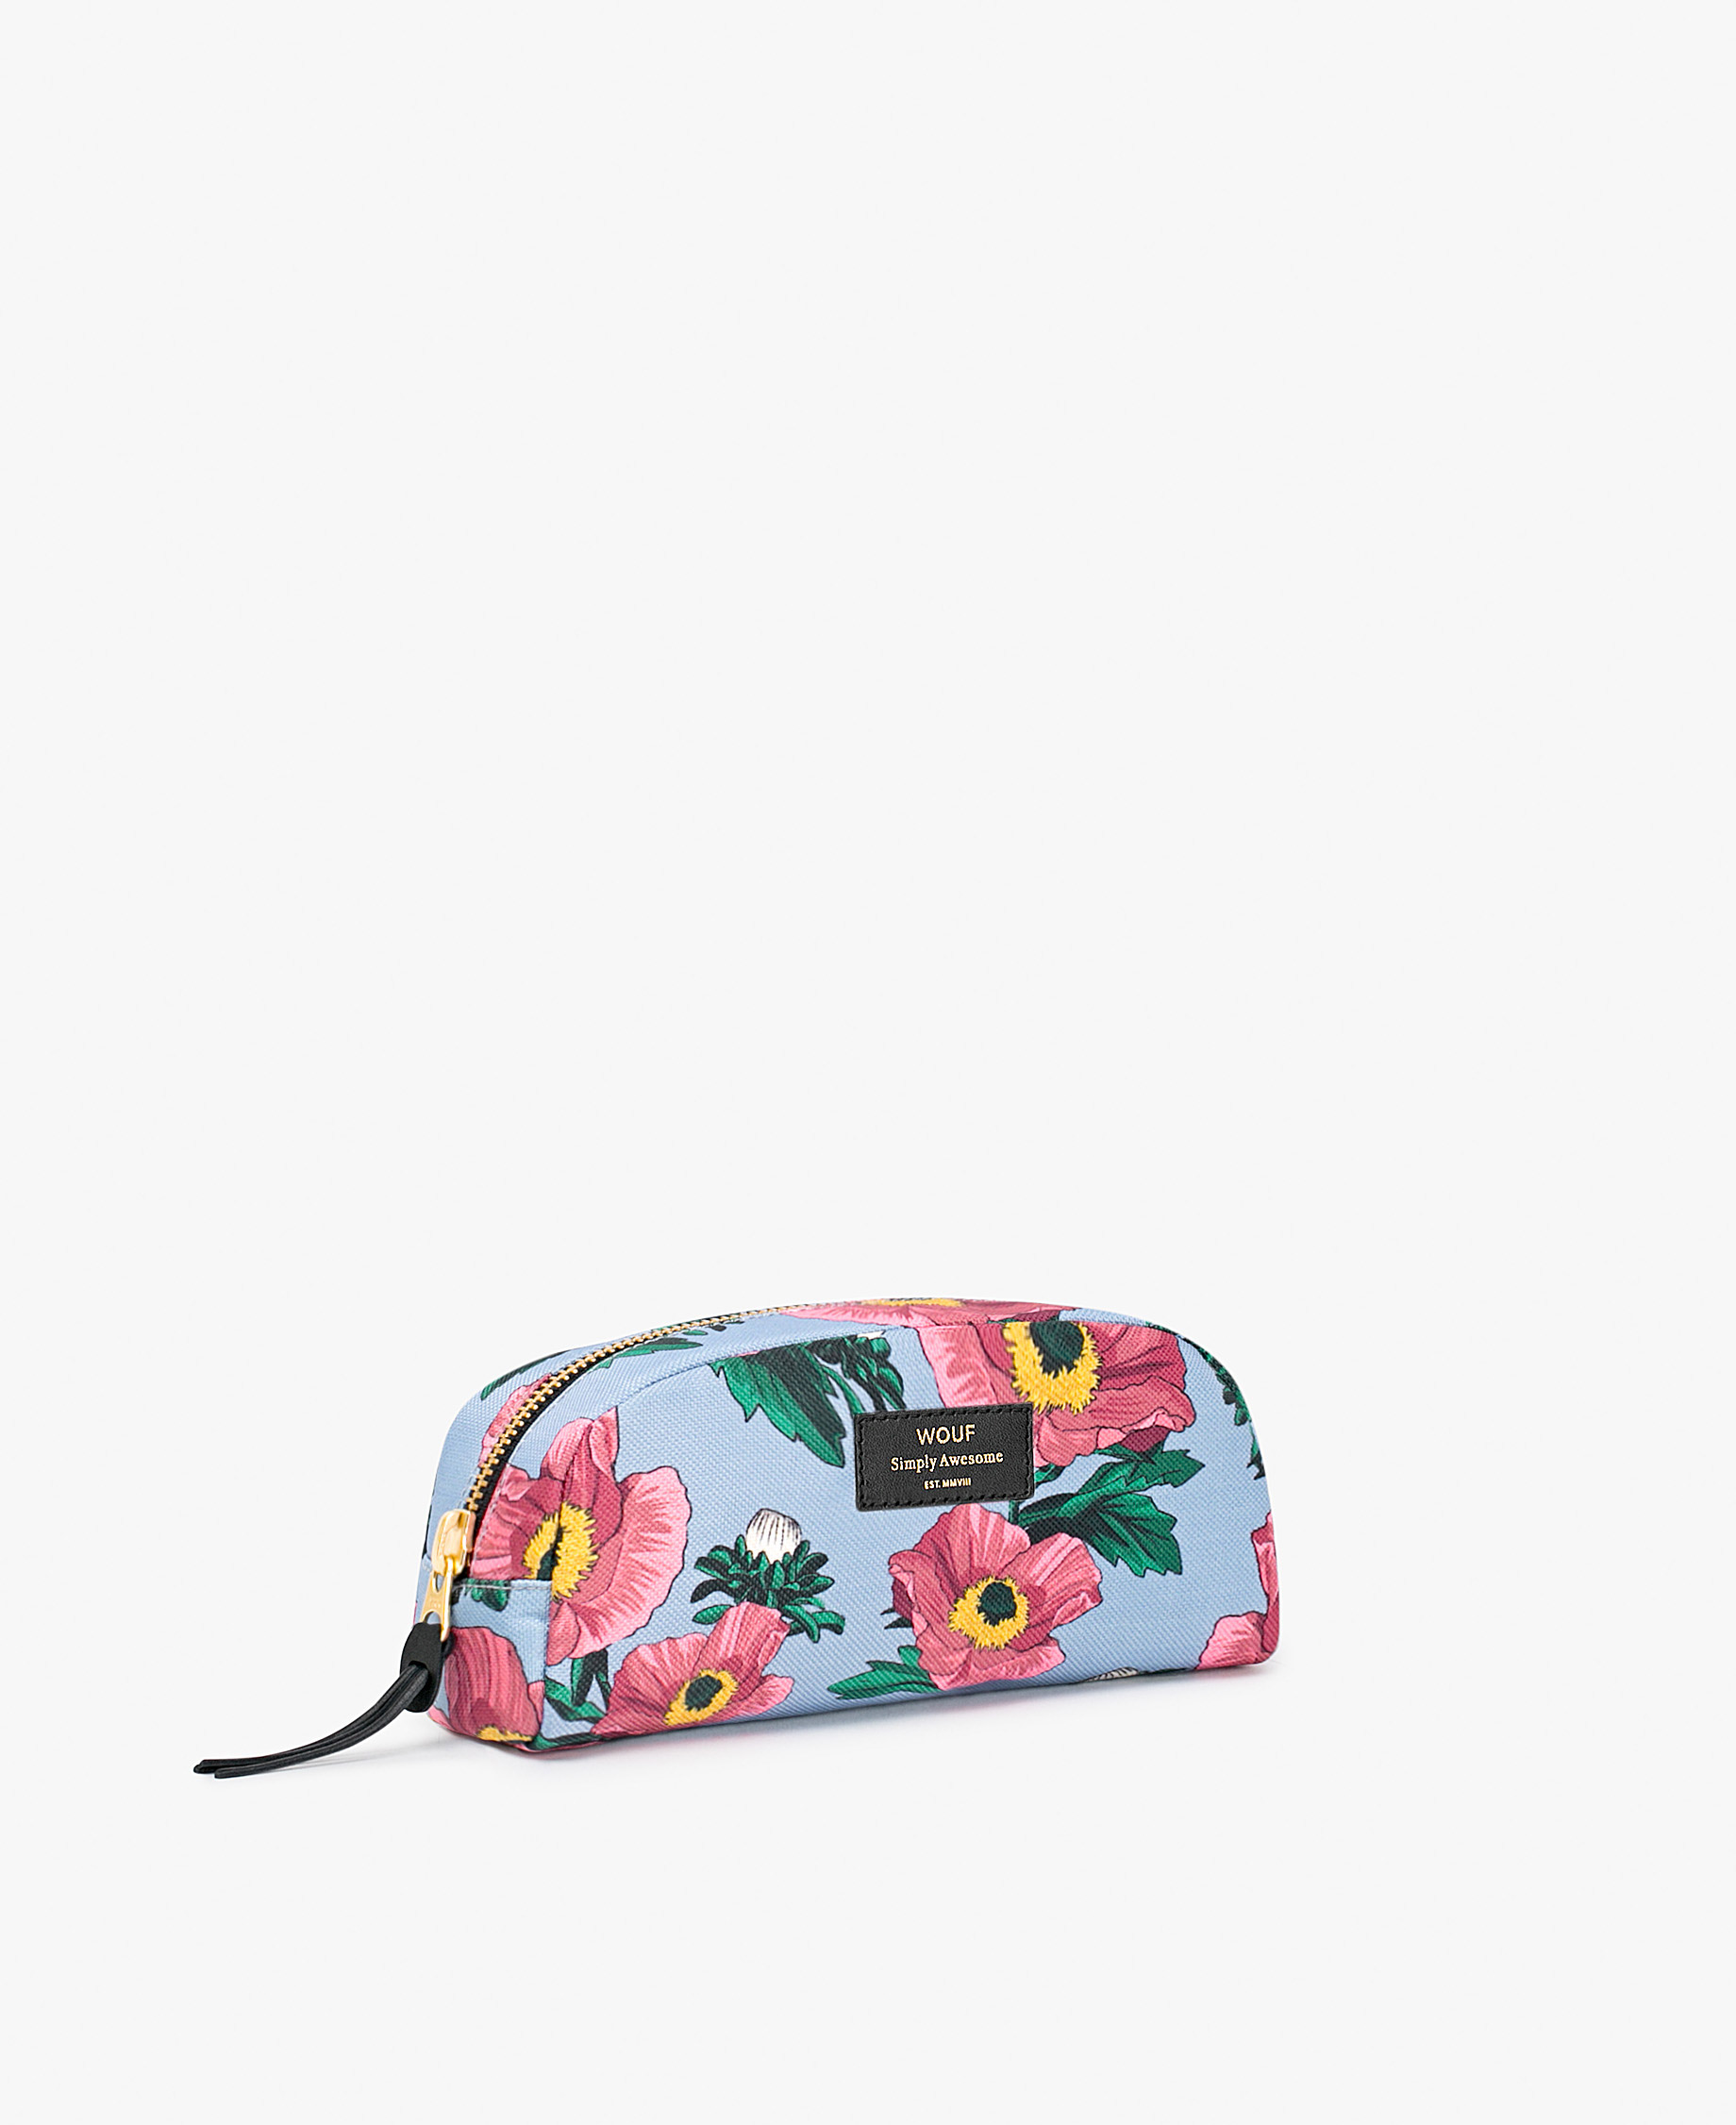 woman's blue toiletry bag with flowers